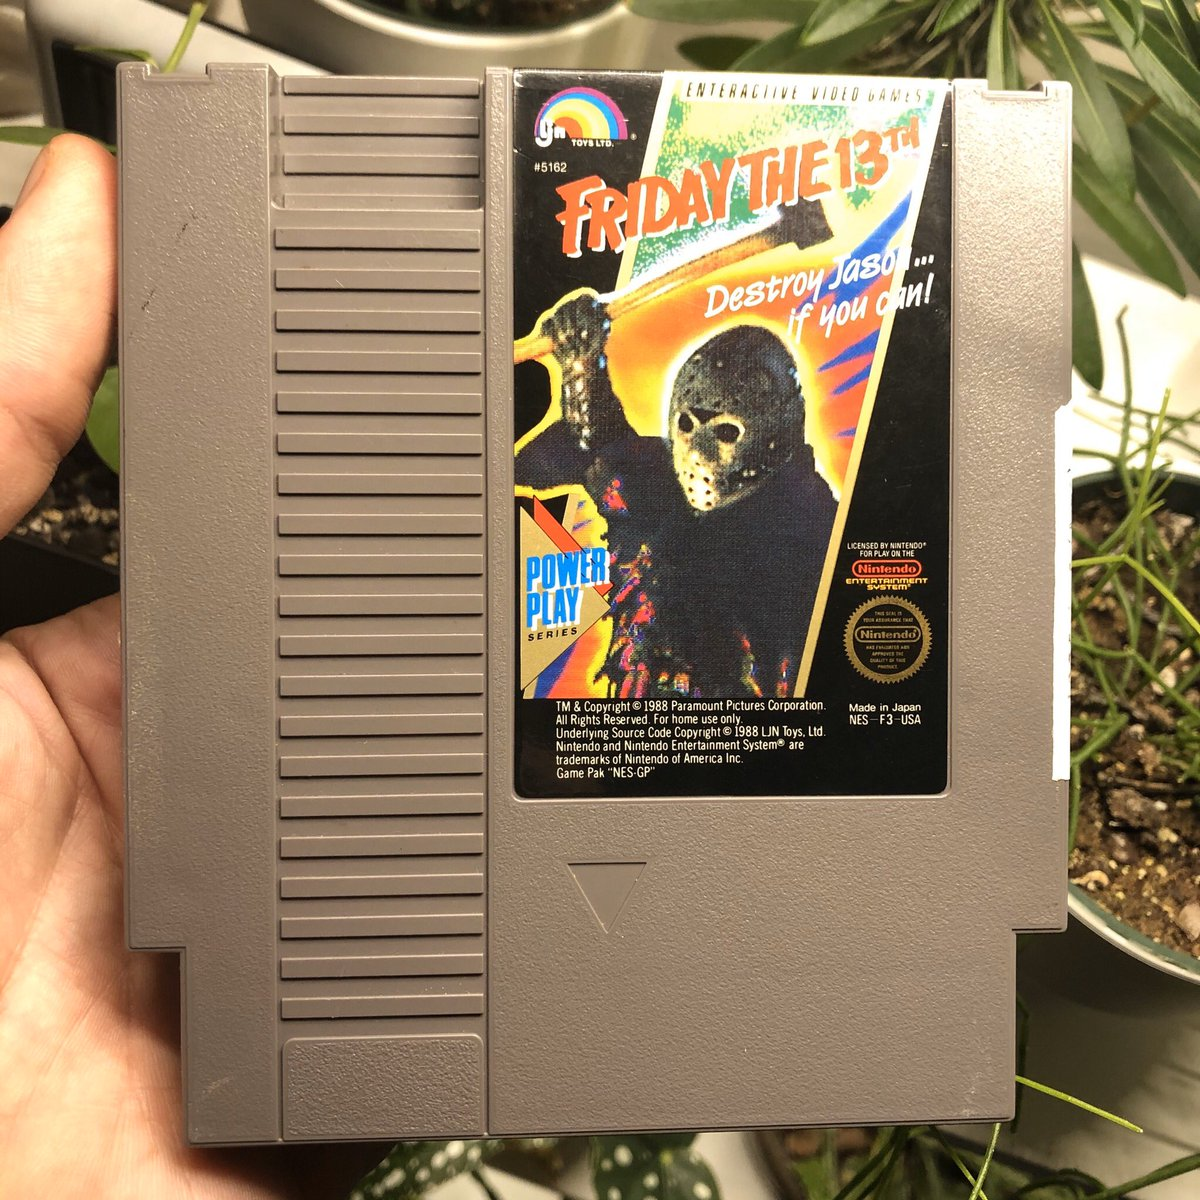 We are official. Time to break some World Records. #Fridaythe13th #Nes #Retro #TwitchStreamer